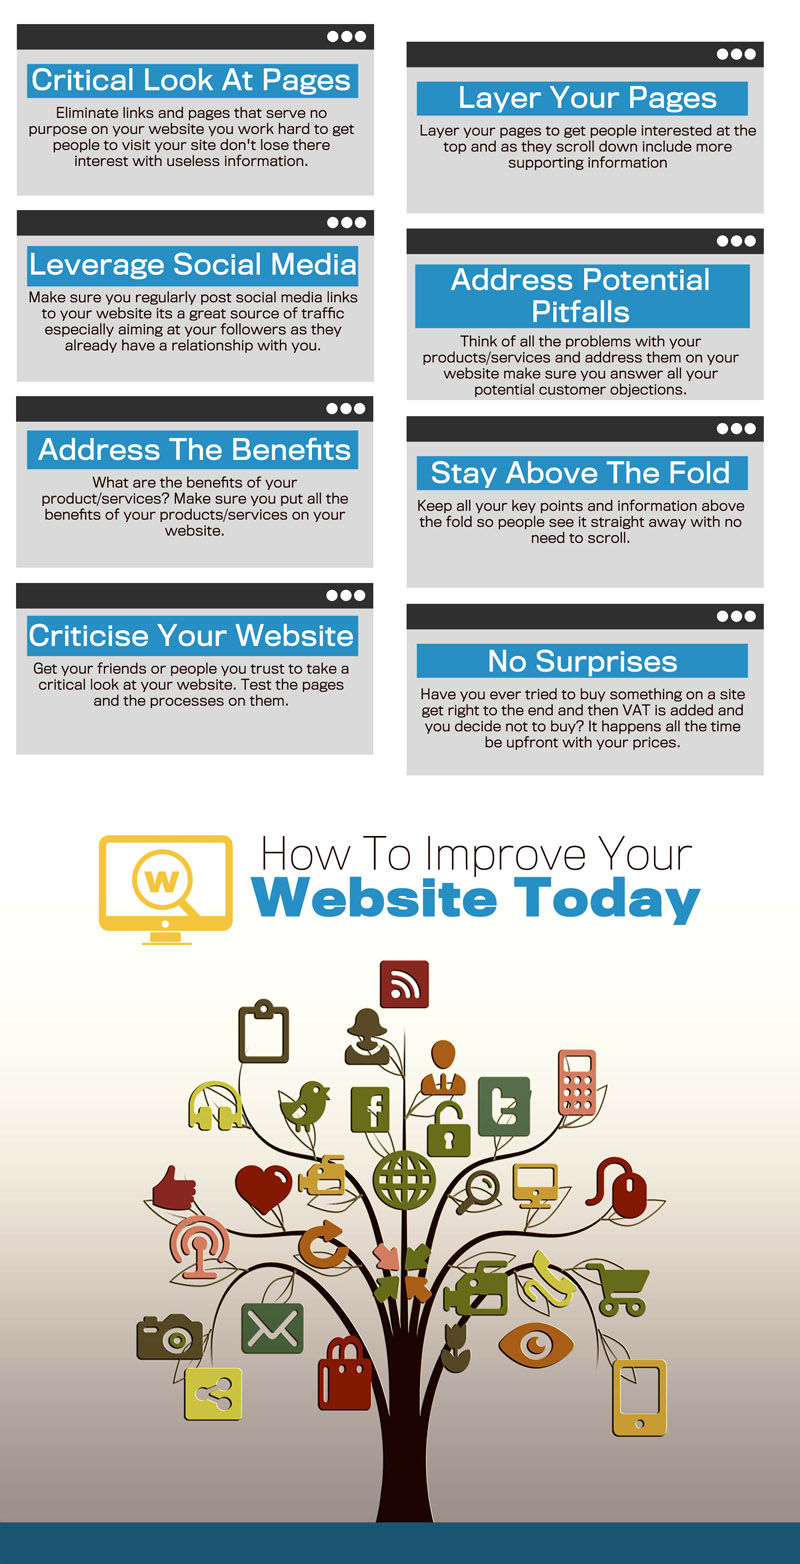 How To Improve Your Website Starting Today Tips From Gikmedia